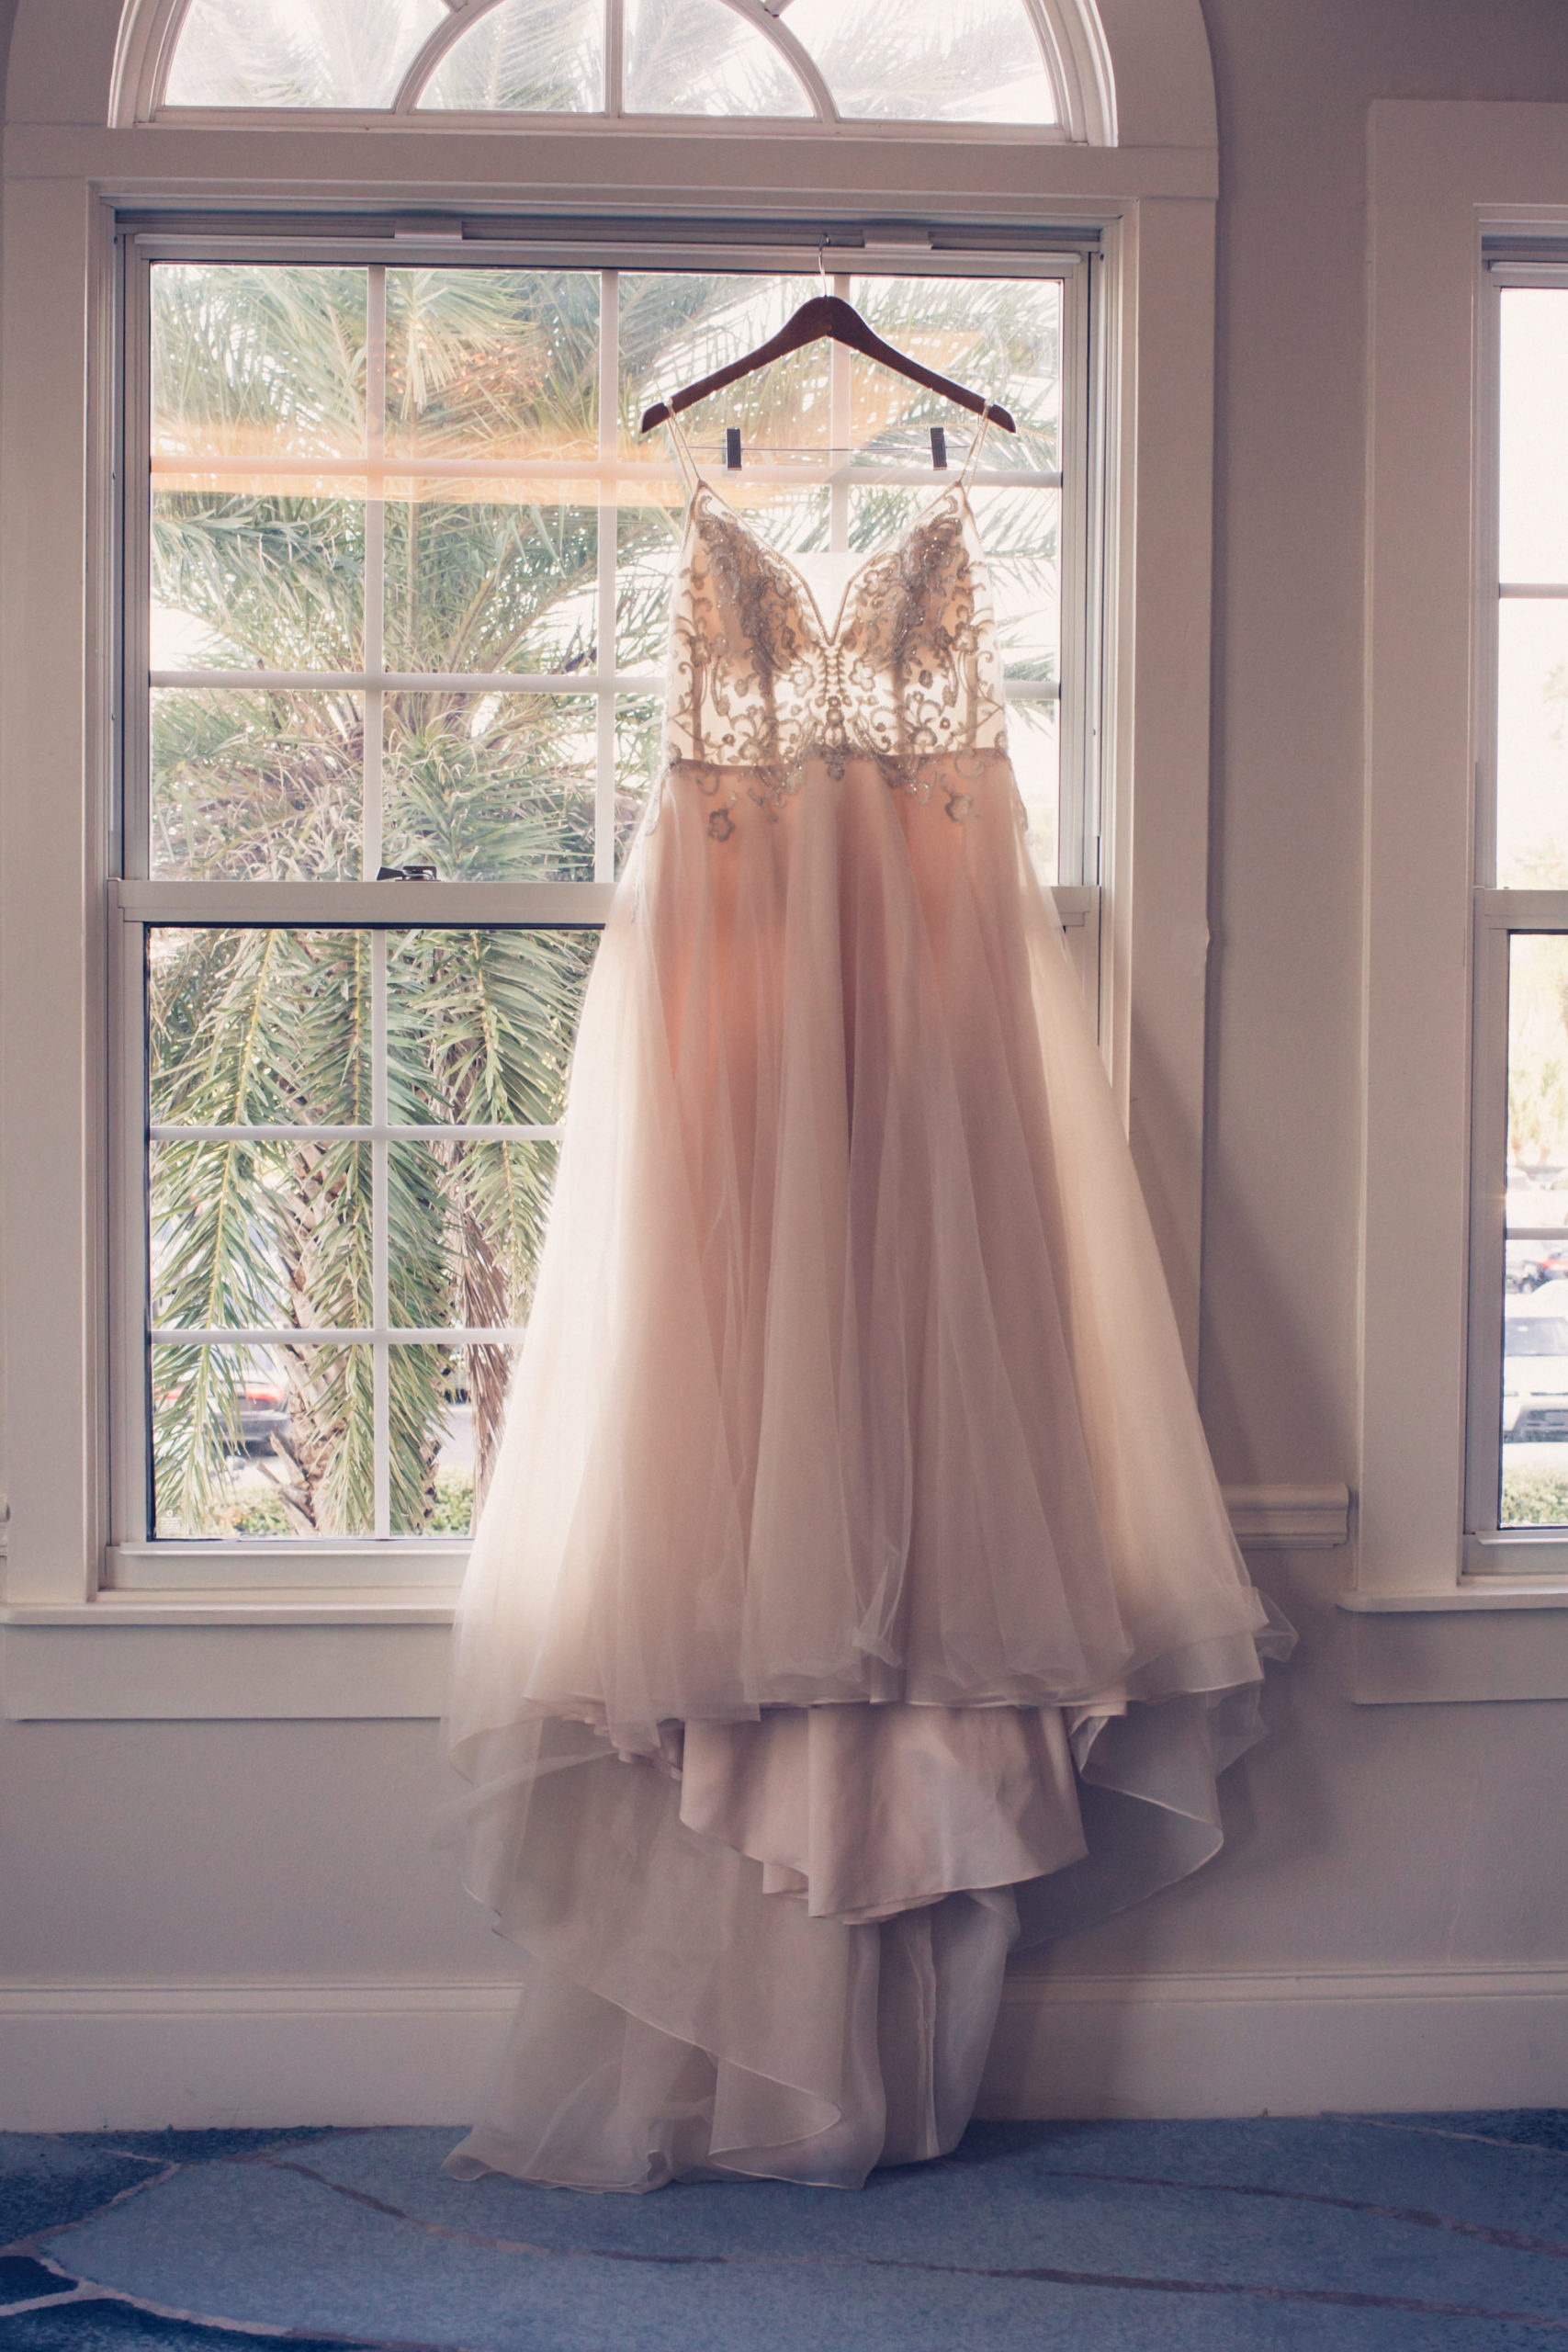 Lace and Illusion V-Neck Spaghetti Straps Bodice, Tulle Skirt Wedding Dress | Wedding Photographer Luxe Light Images